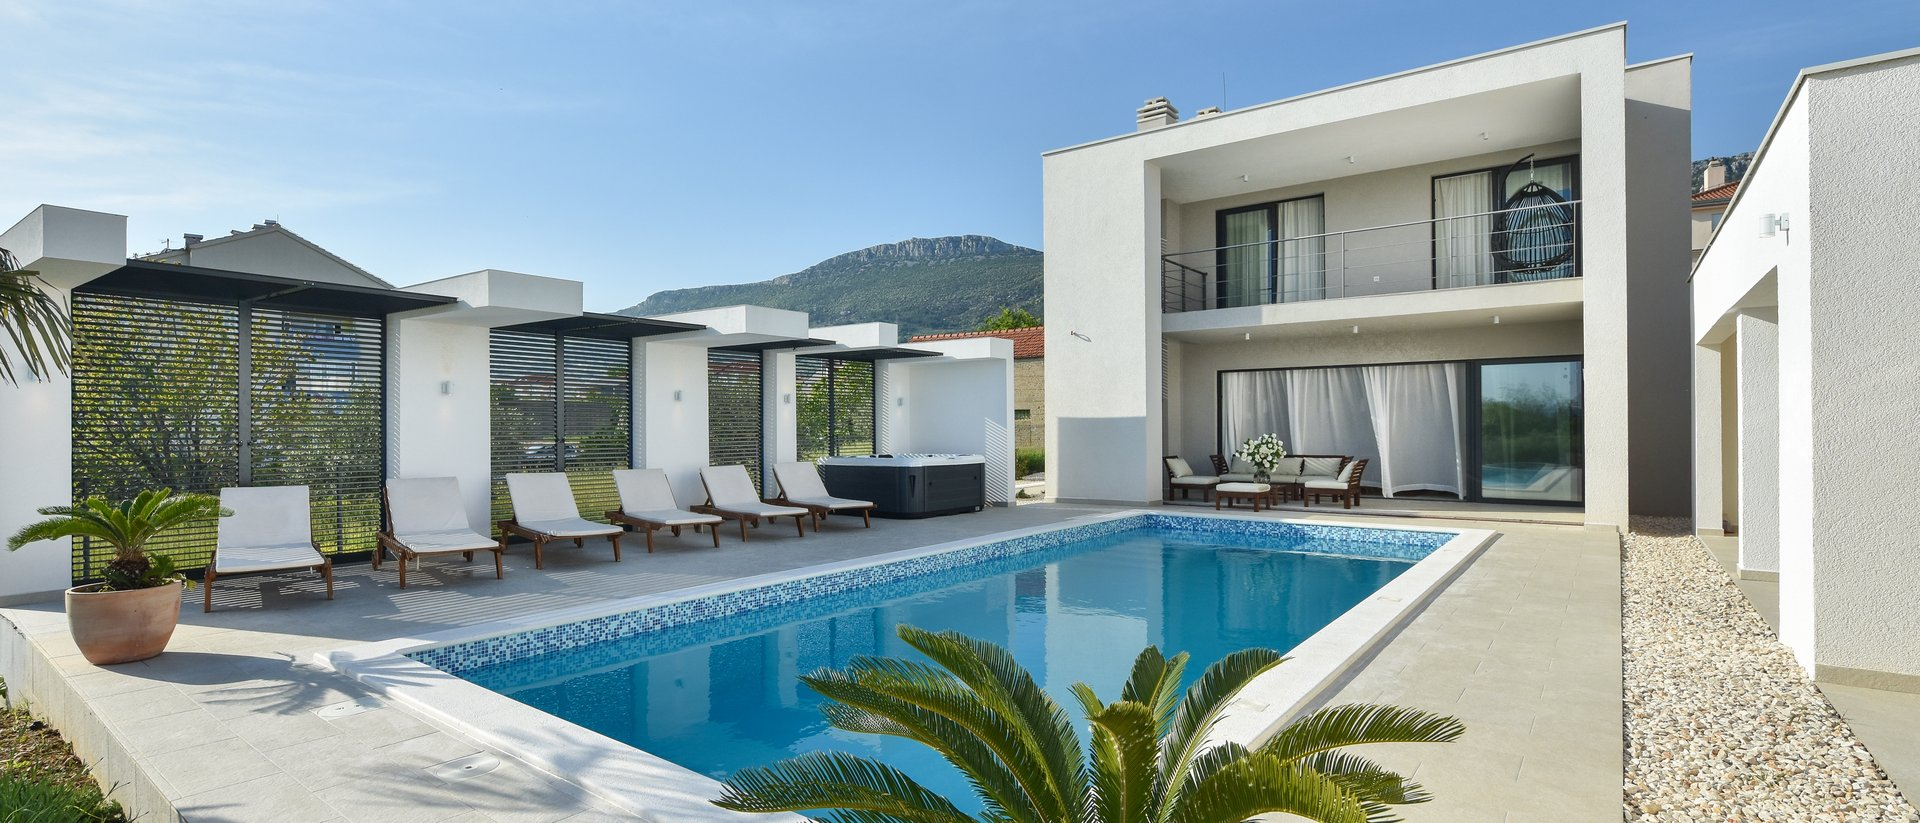 LUXURIOUS VILLA WITH A SEA VIEW ACCOMODATED IN ONE OF SEVEN BEAUTIFUL KAŠTELA!